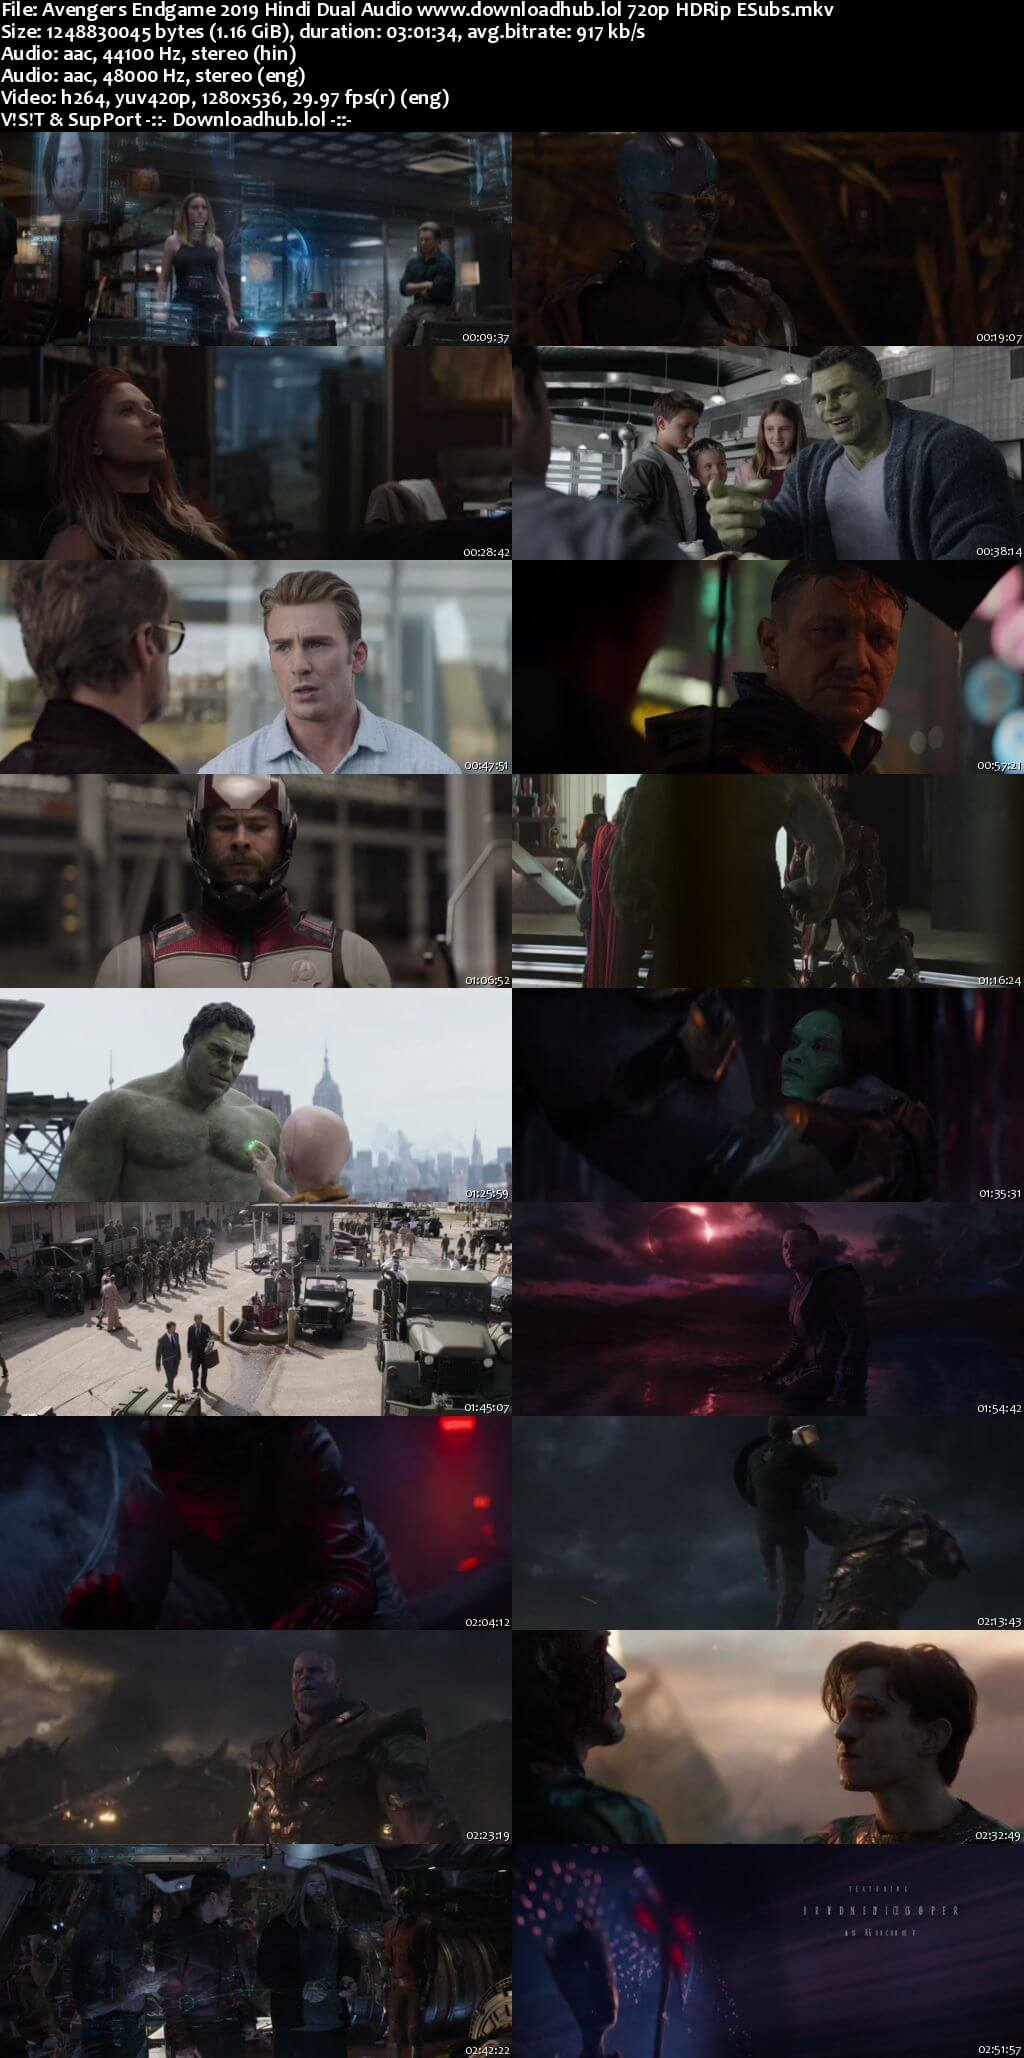 Avengers Endgame 2019 Hindi Dual Audio 720p HDRip ESubs